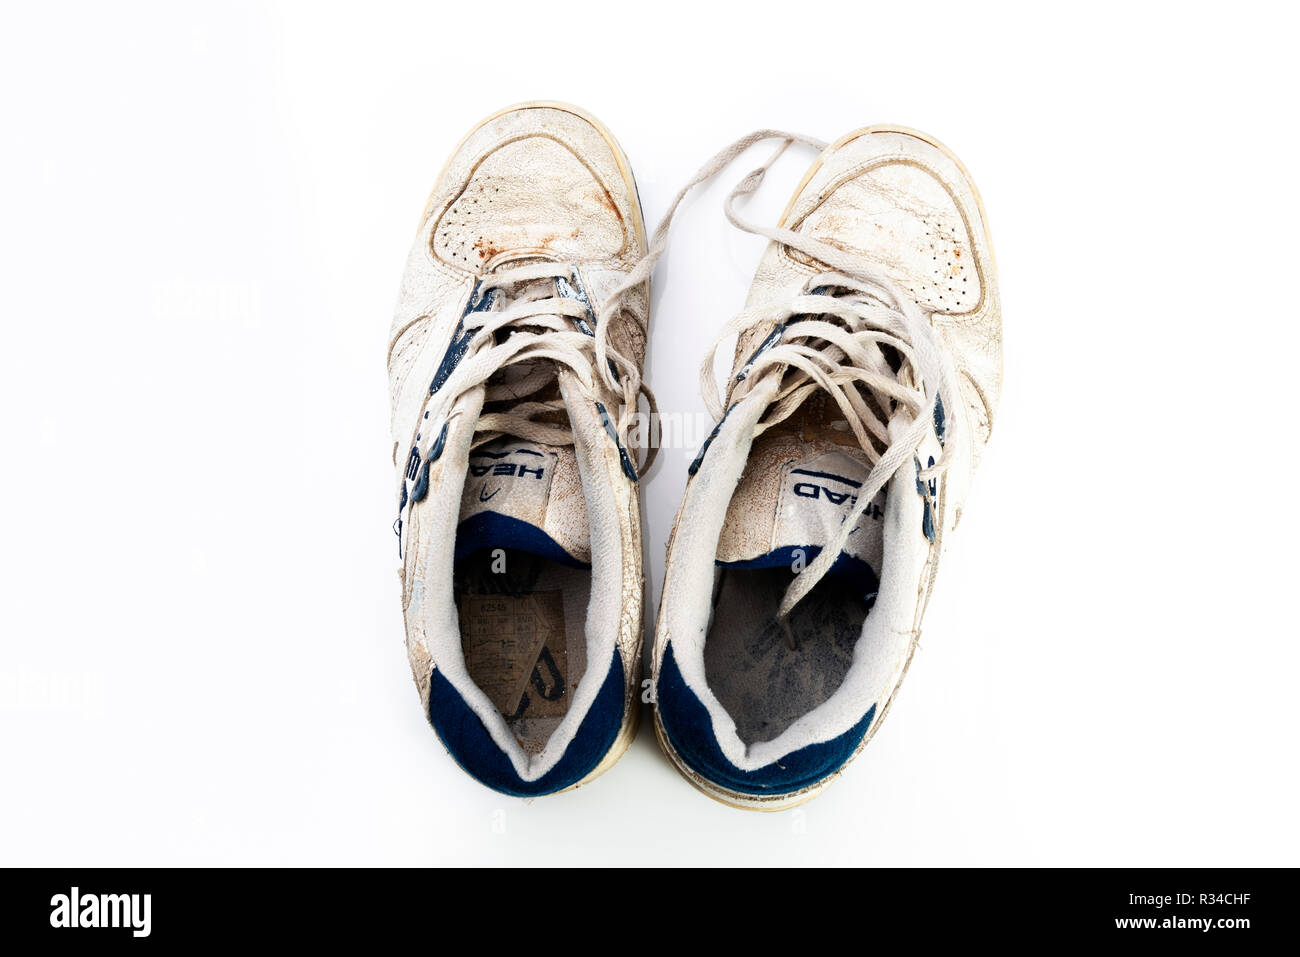 Pair of retro dirty old trainers. Worn and battered sneakers. - Stock Image